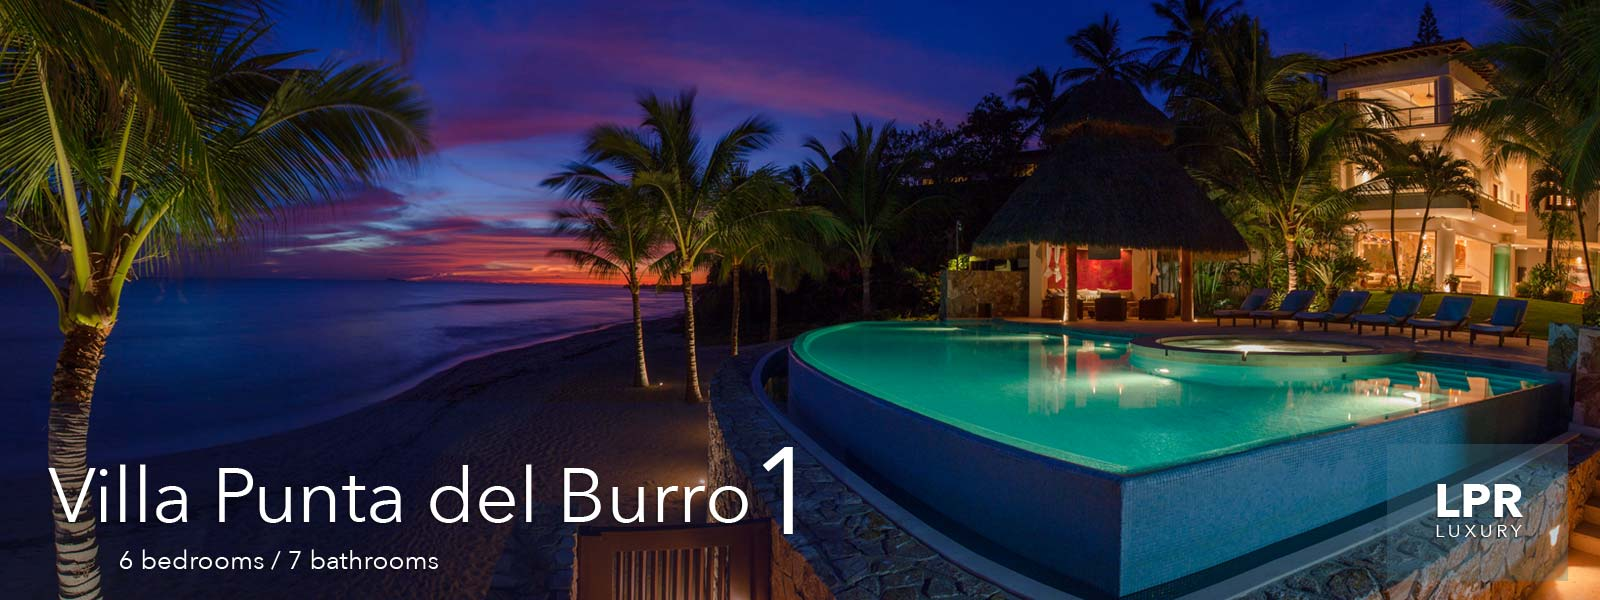 Villa Punta del Burro - Luxury Punta de Mita Real Estate and Vacation Rentals Villas